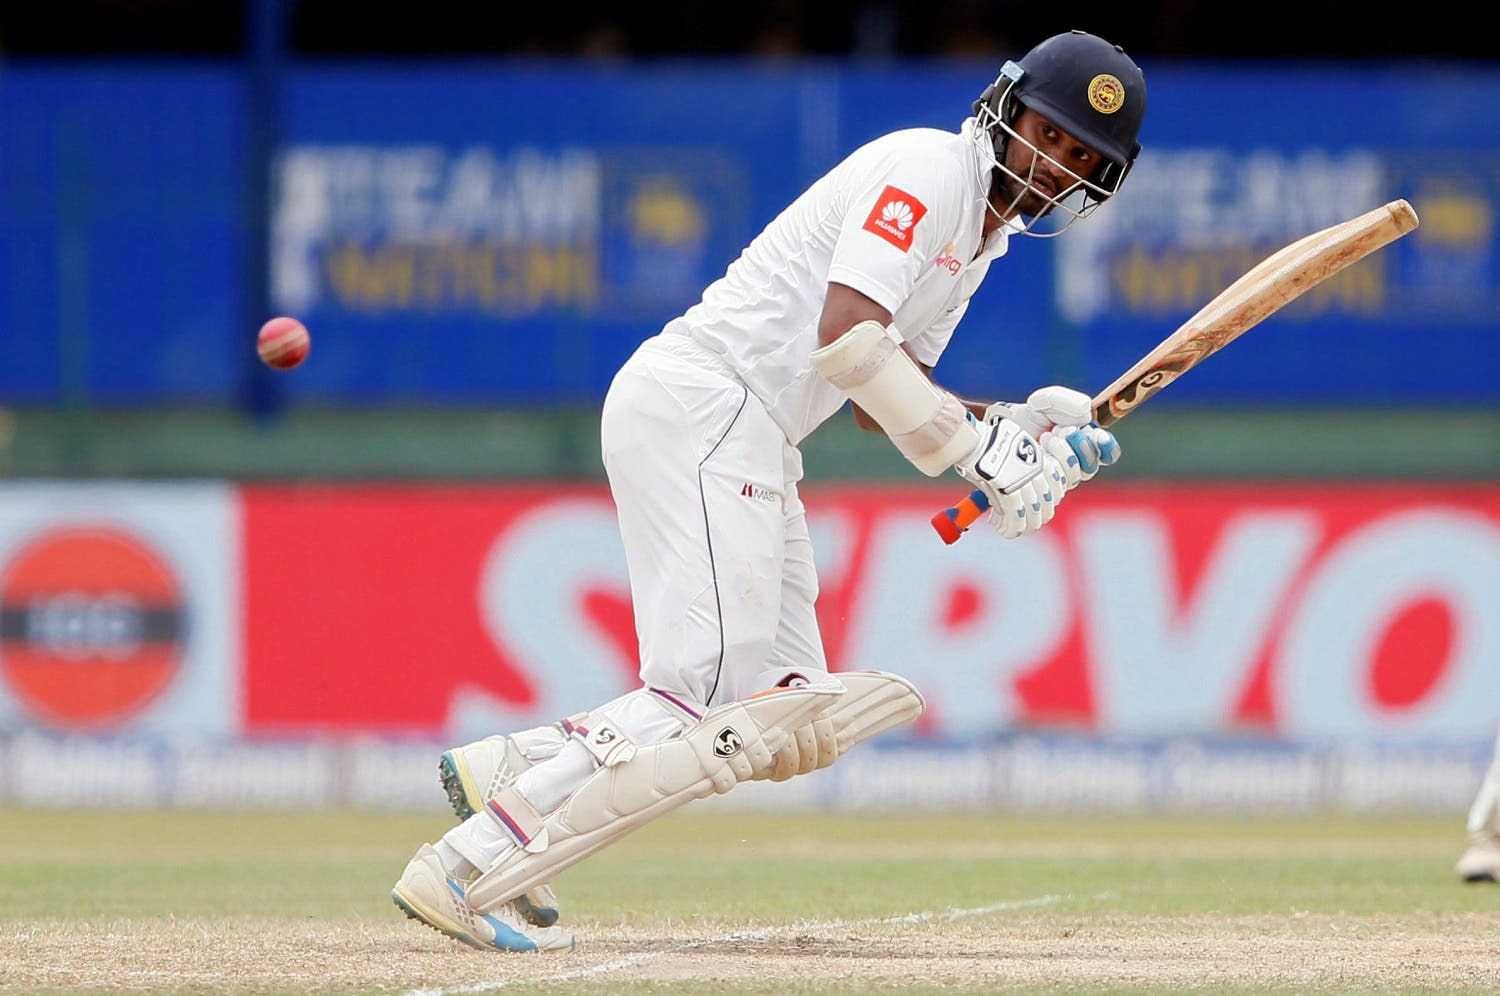 Sri Lanka's Dimuth Karunaratne hits a boundary action in the second Test match against India in Colombo. (Reuters)